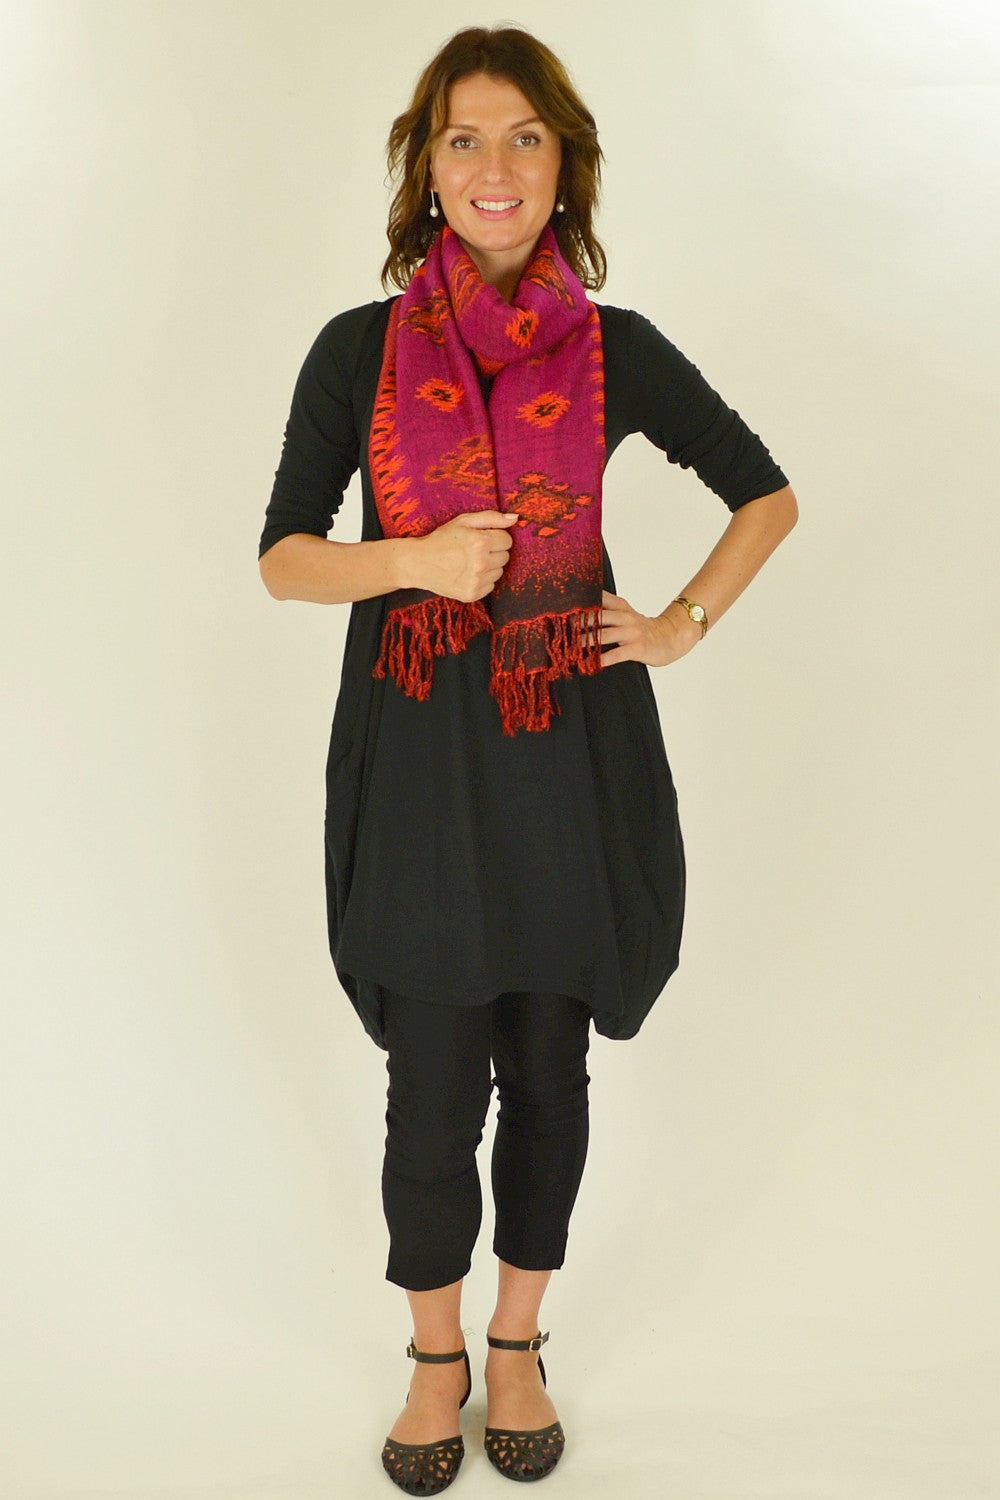 Hot Pink Pashmina Scarf - at I Love Tunics @ www.ilovetunics.com = Number One! Tunics Destination